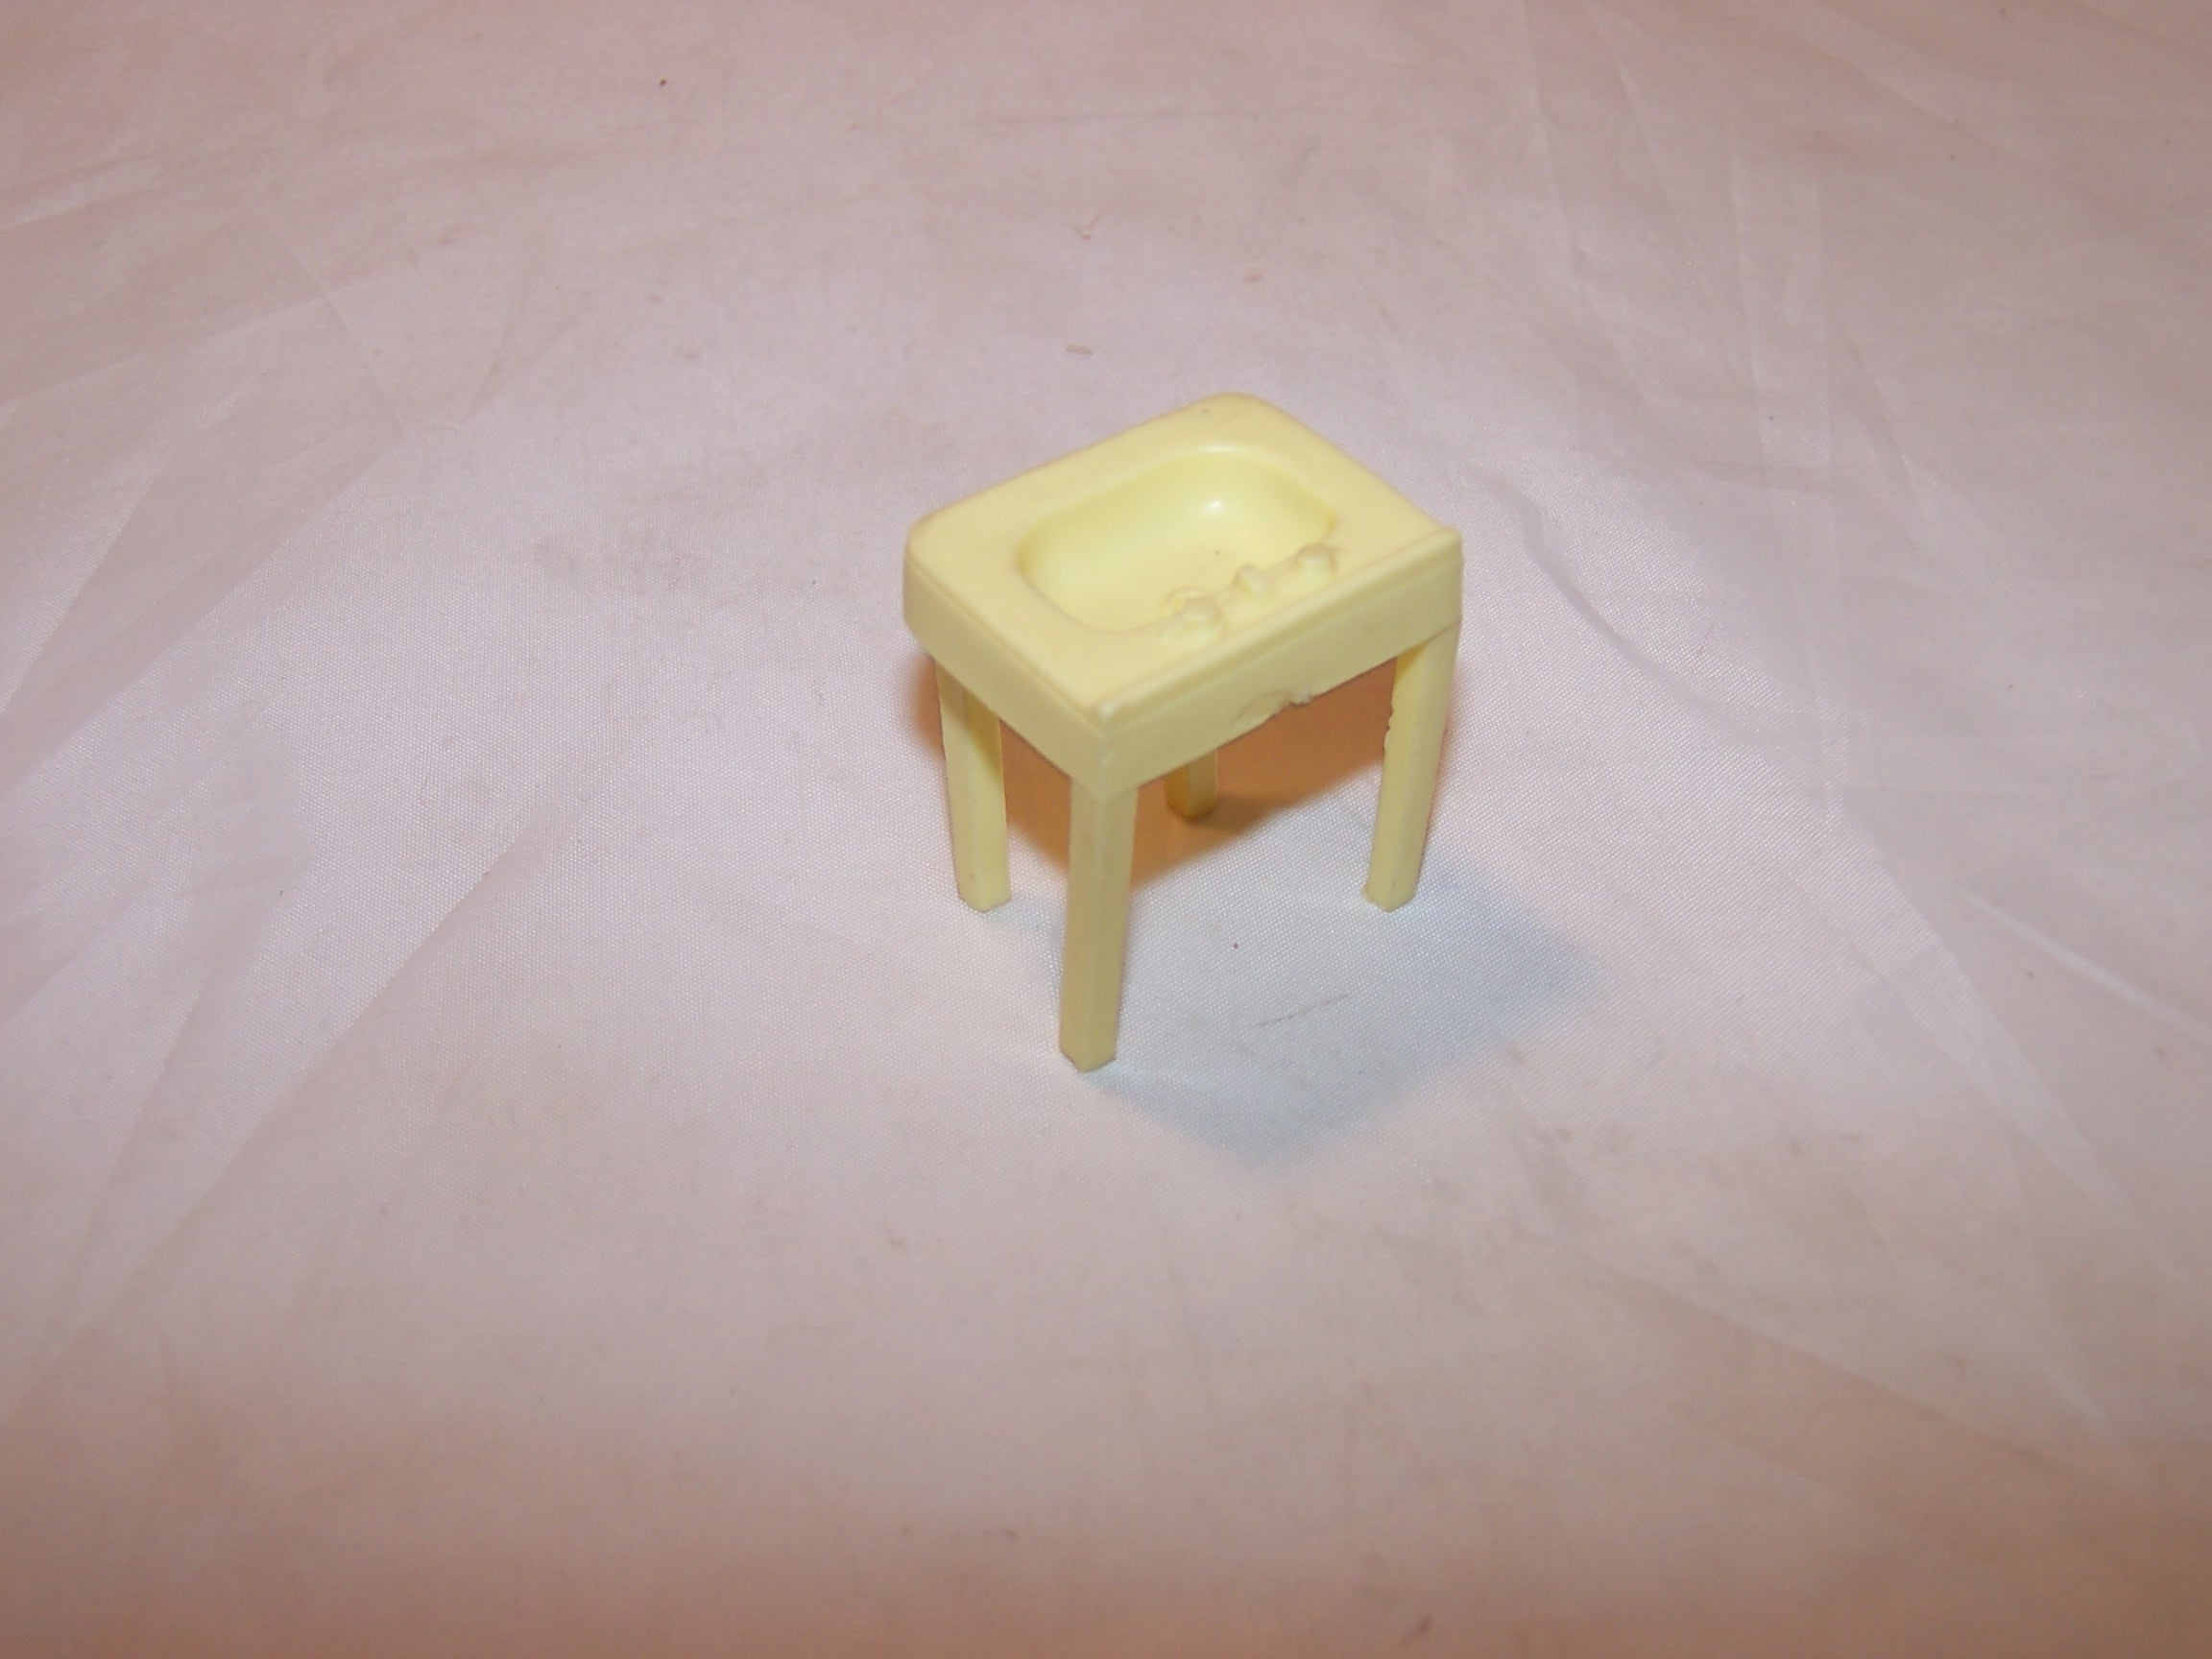 Image 1 of Dollhouse Bathroom Sink, Plastic, Vintage